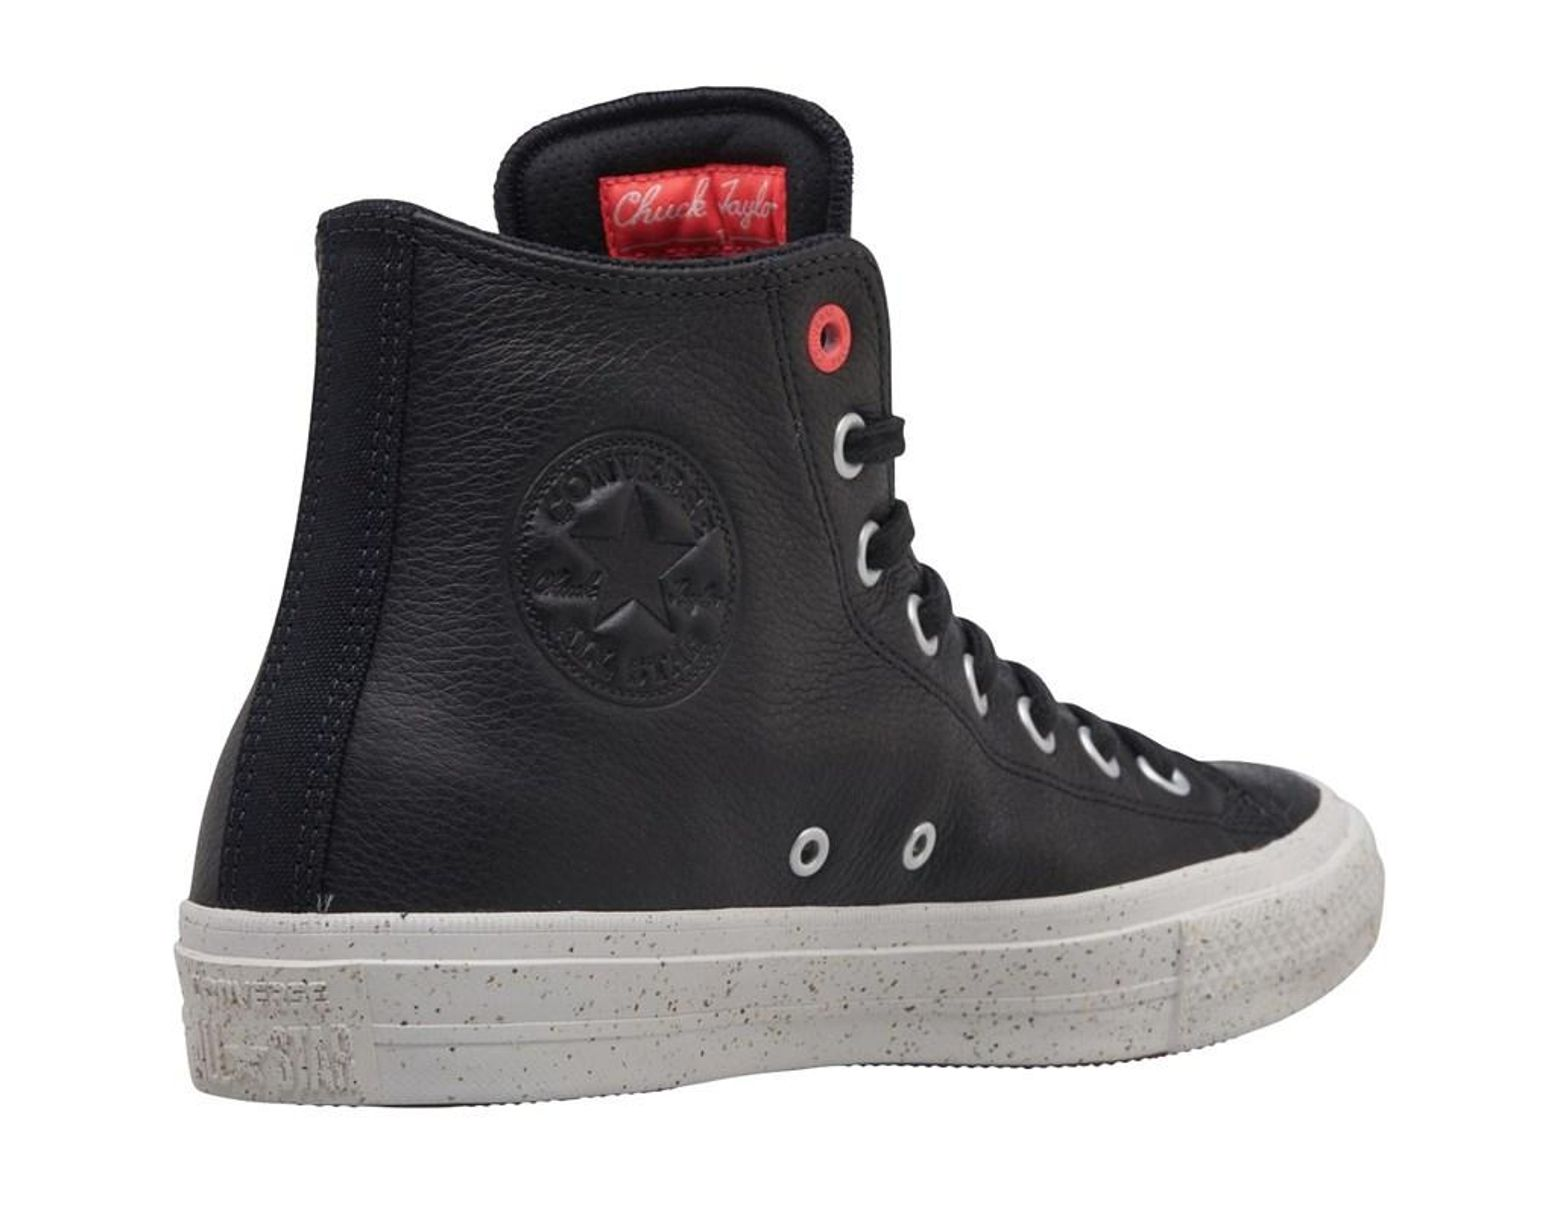 6016d2a901 Converse Chuck Taylor All Star Ii Hi Trainers Black/solar Red in Black for  Men - Lyst